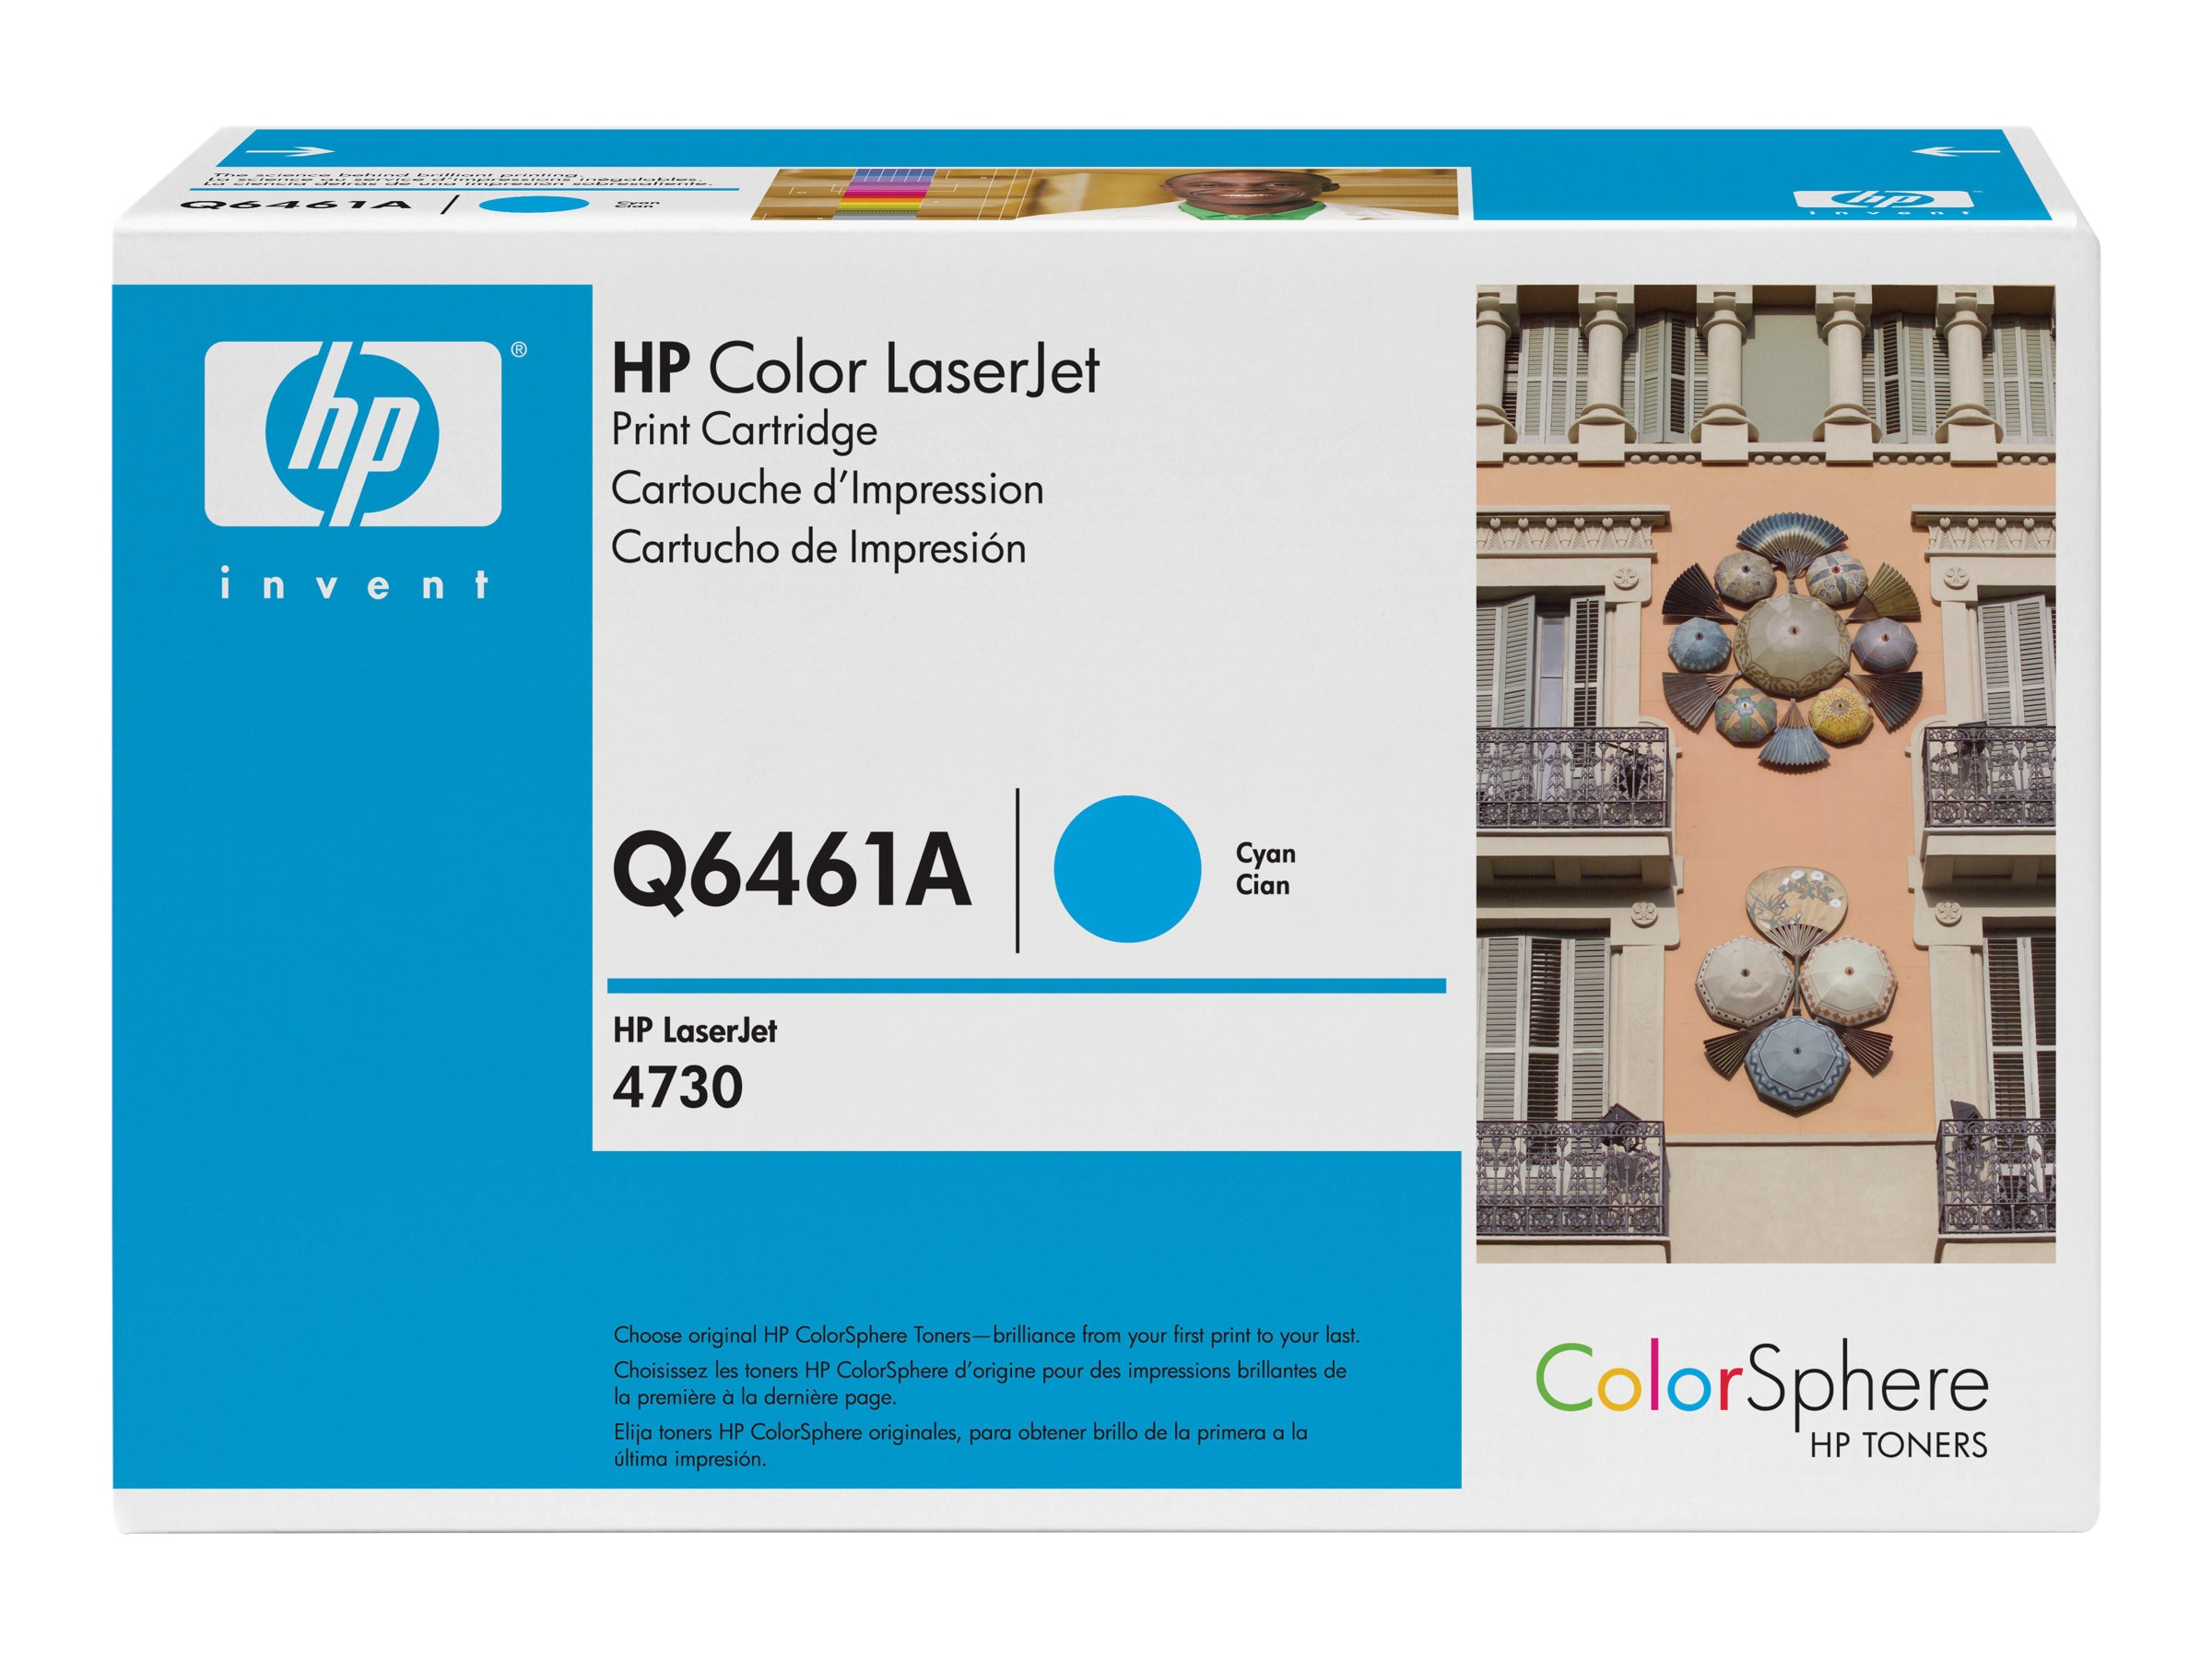 HP 644A (Q6461A) Cyan Original LaserJet Toner Cartridge for HP LaserJet 4730 MFP Series